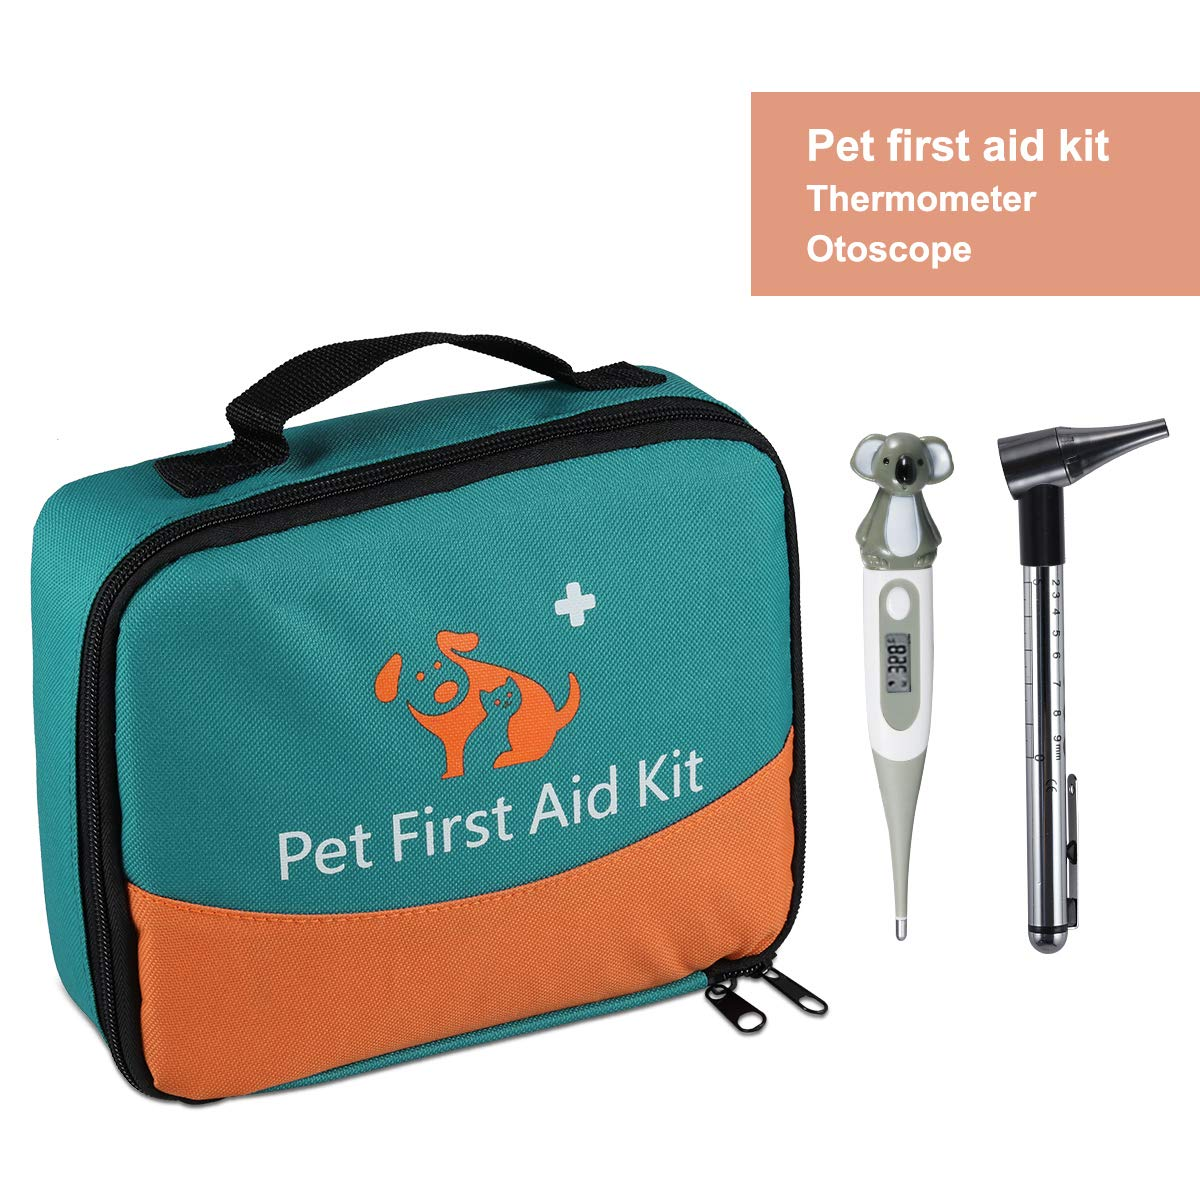 iCare-Pet Pet First Aid Kit with Thermometer & Veterinary Otoscope for Home Care and Outdoor Travel to Care Our Dogs/Cats by iCare-Pet